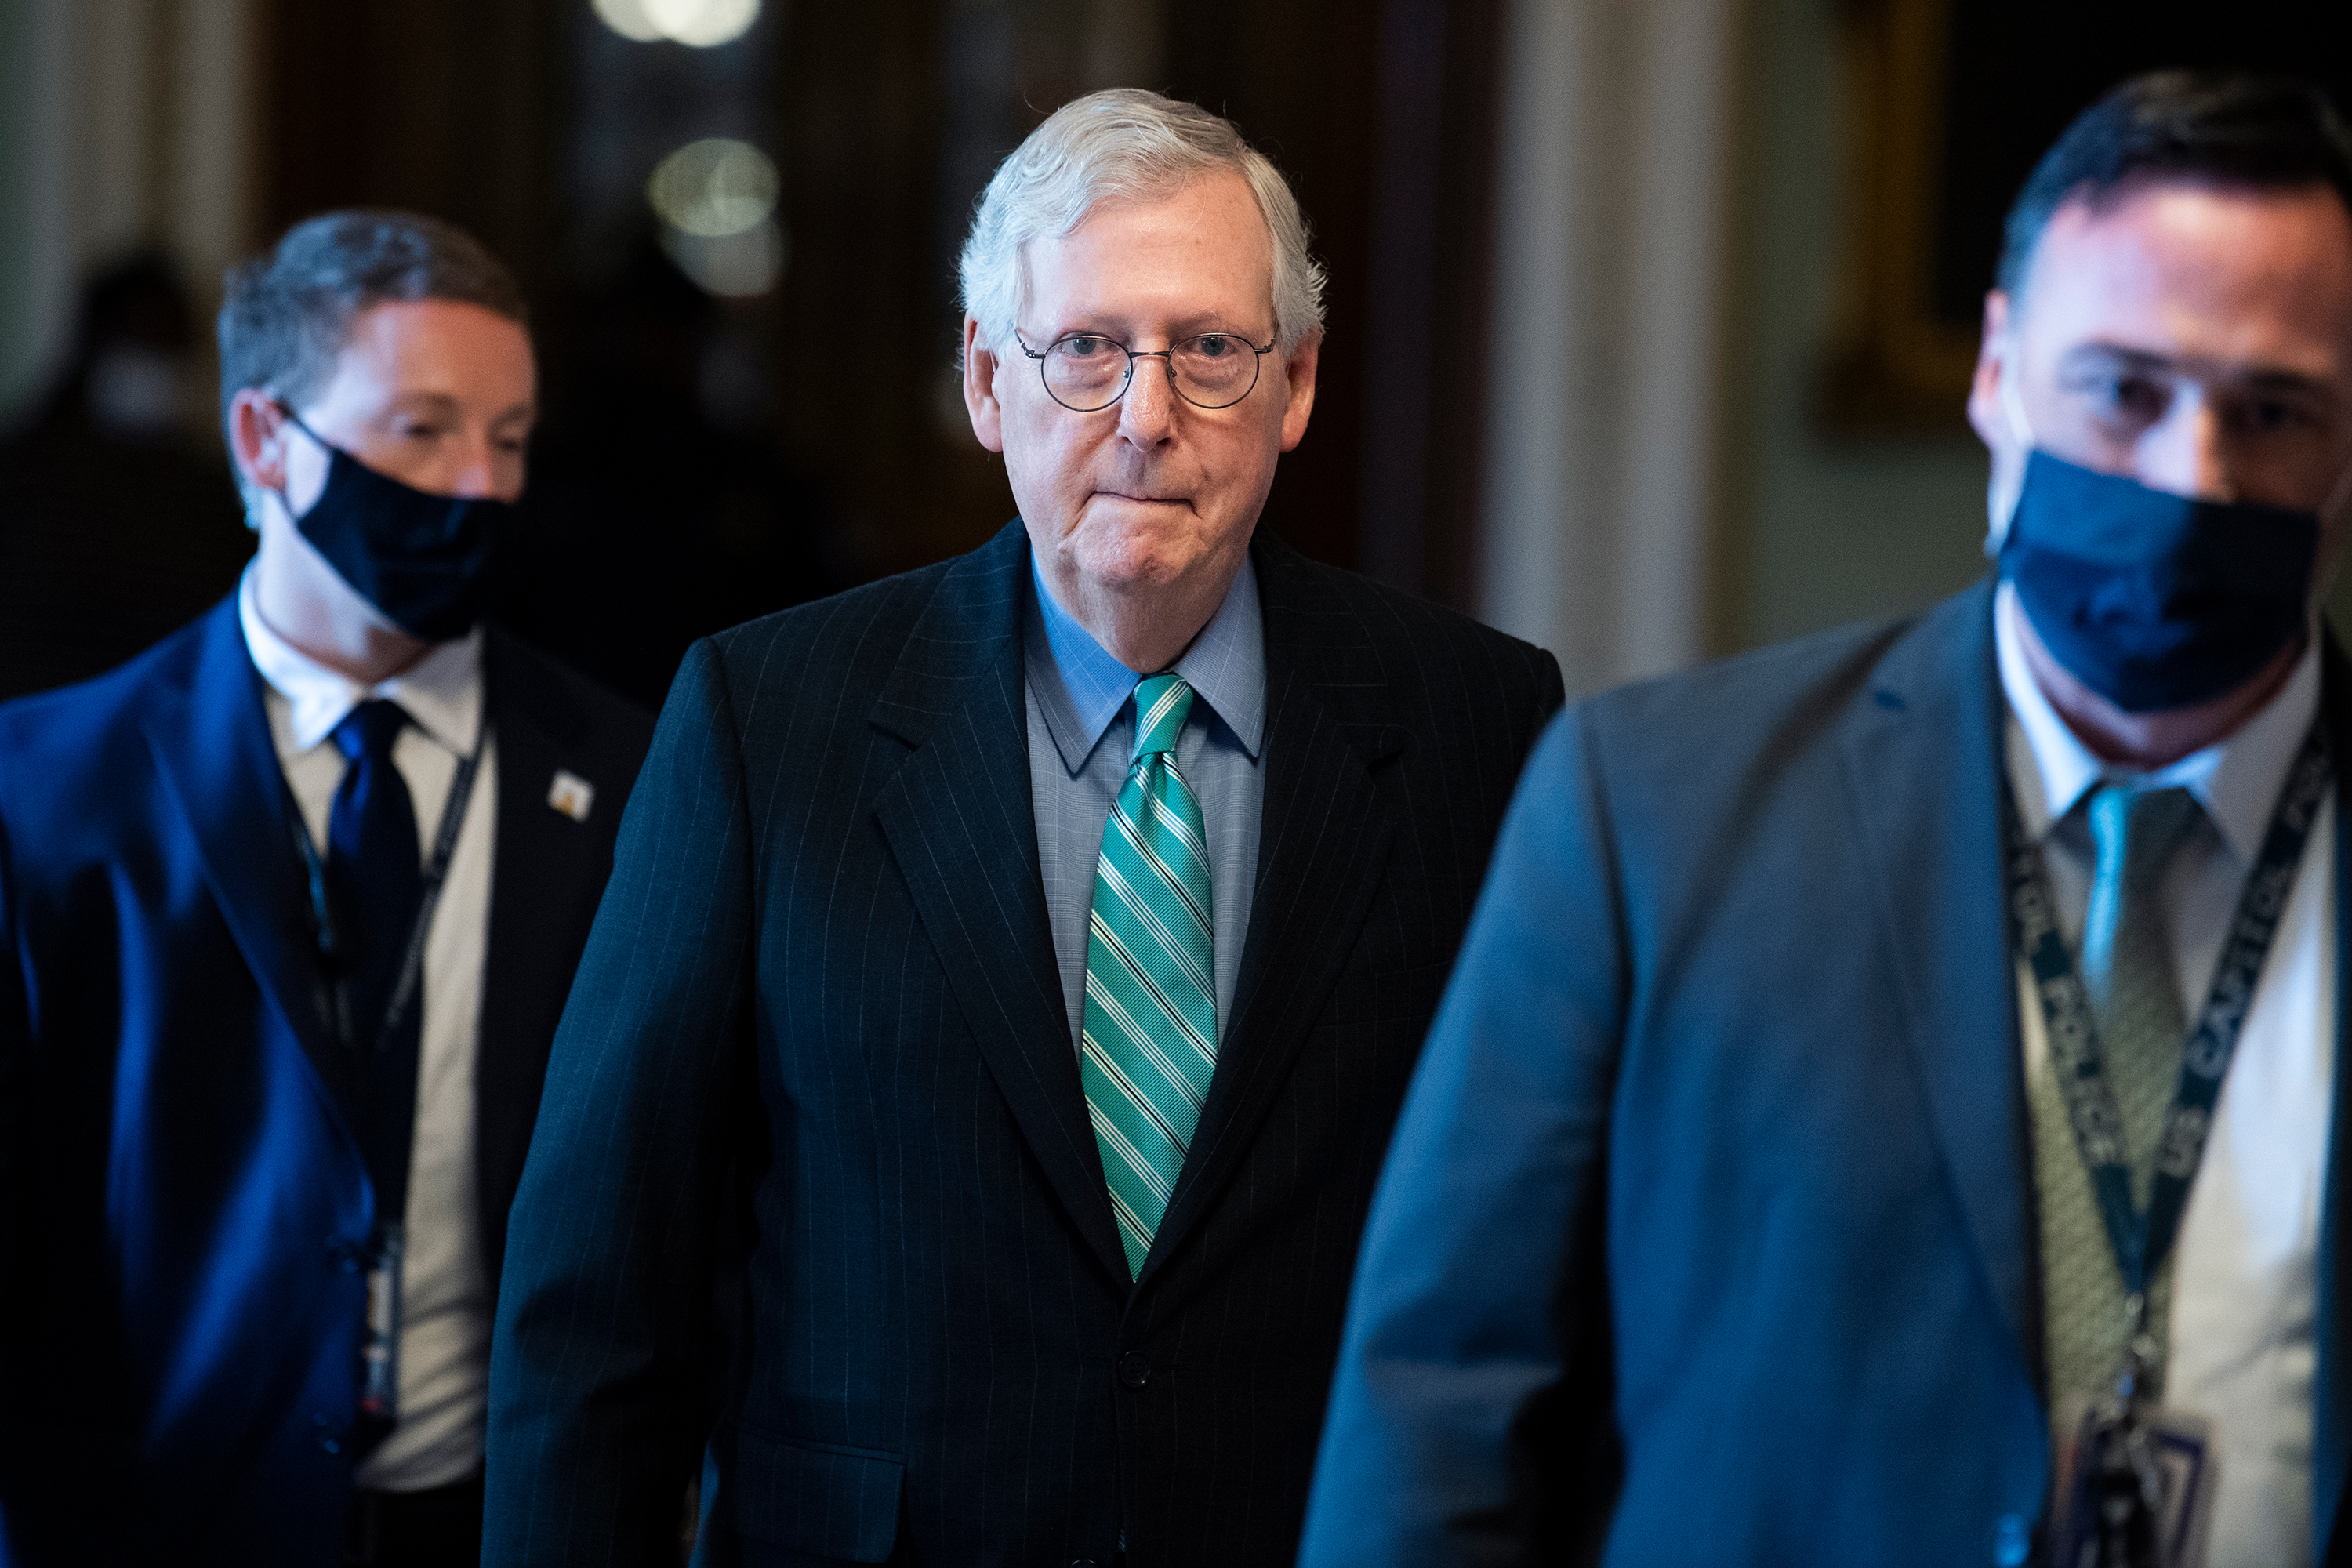 Senate Minority Leader Mitch McConnell walks in the US Capitol on Thursday, October 7.